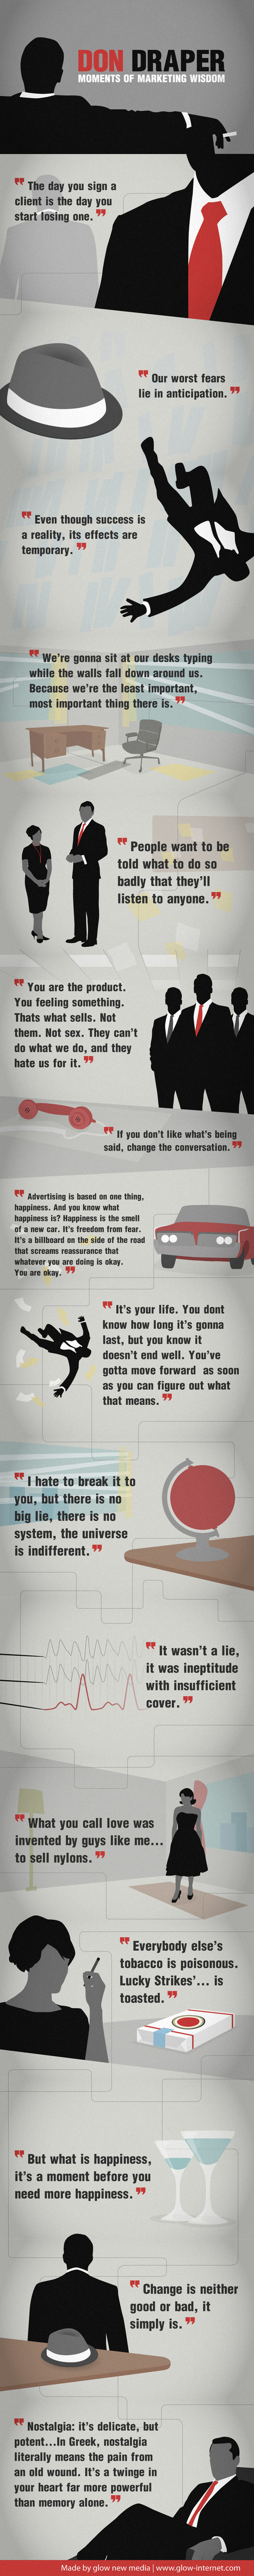 Don Draper's Moments of Marketing Wisdom (Infographic) | Digital-News on Scoop.it today | Scoop.it